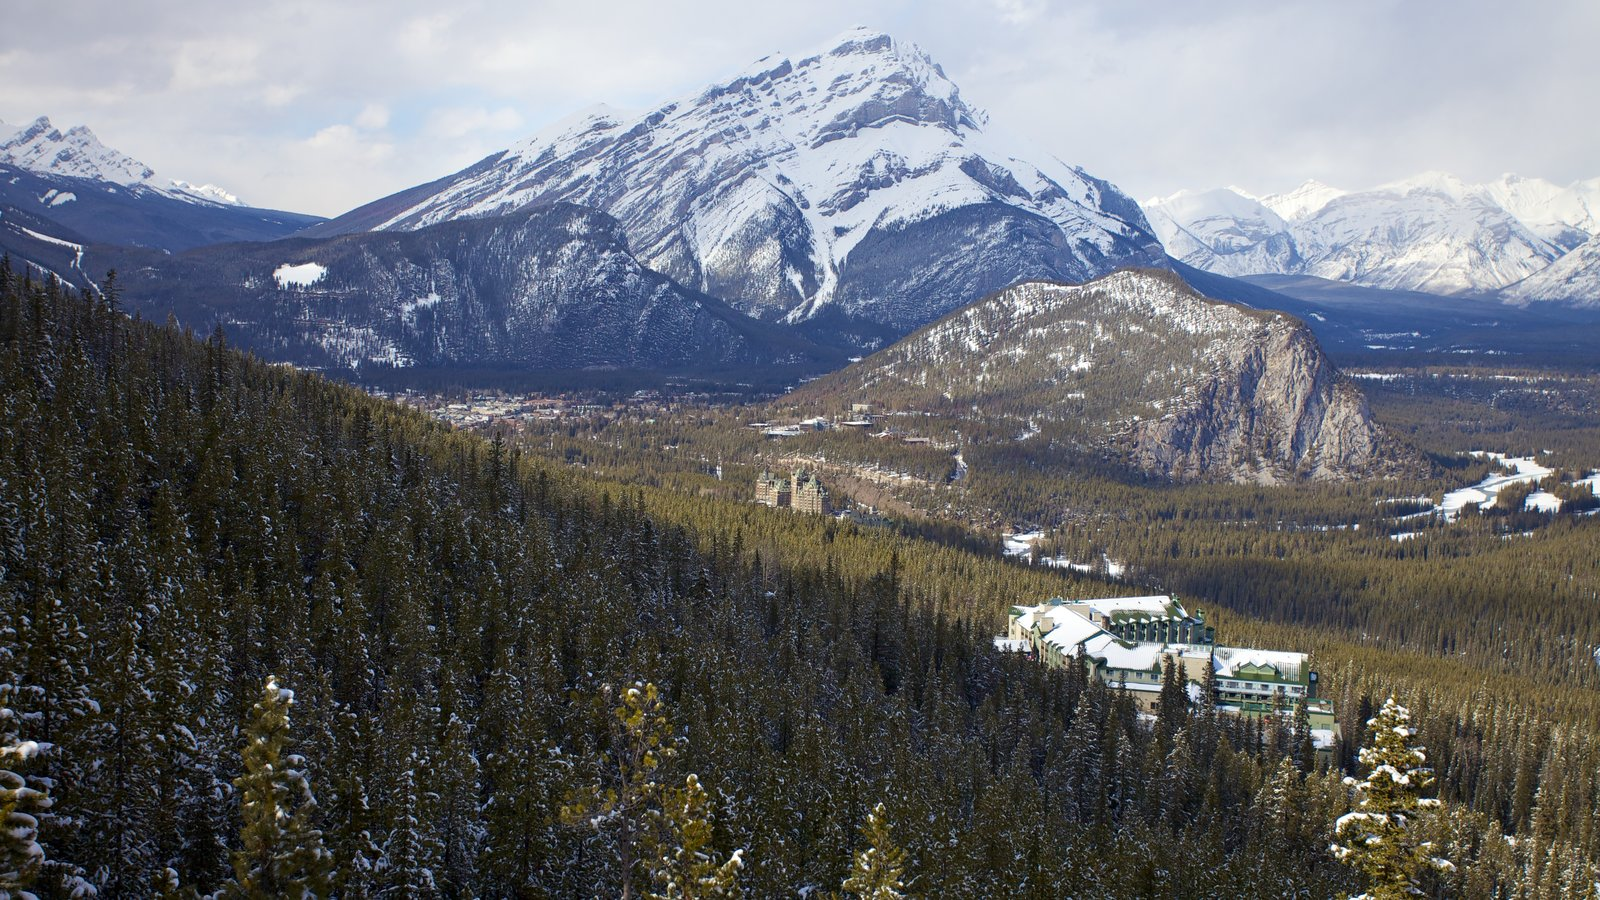 Banff Gondola showing snow, landscape views and mountains